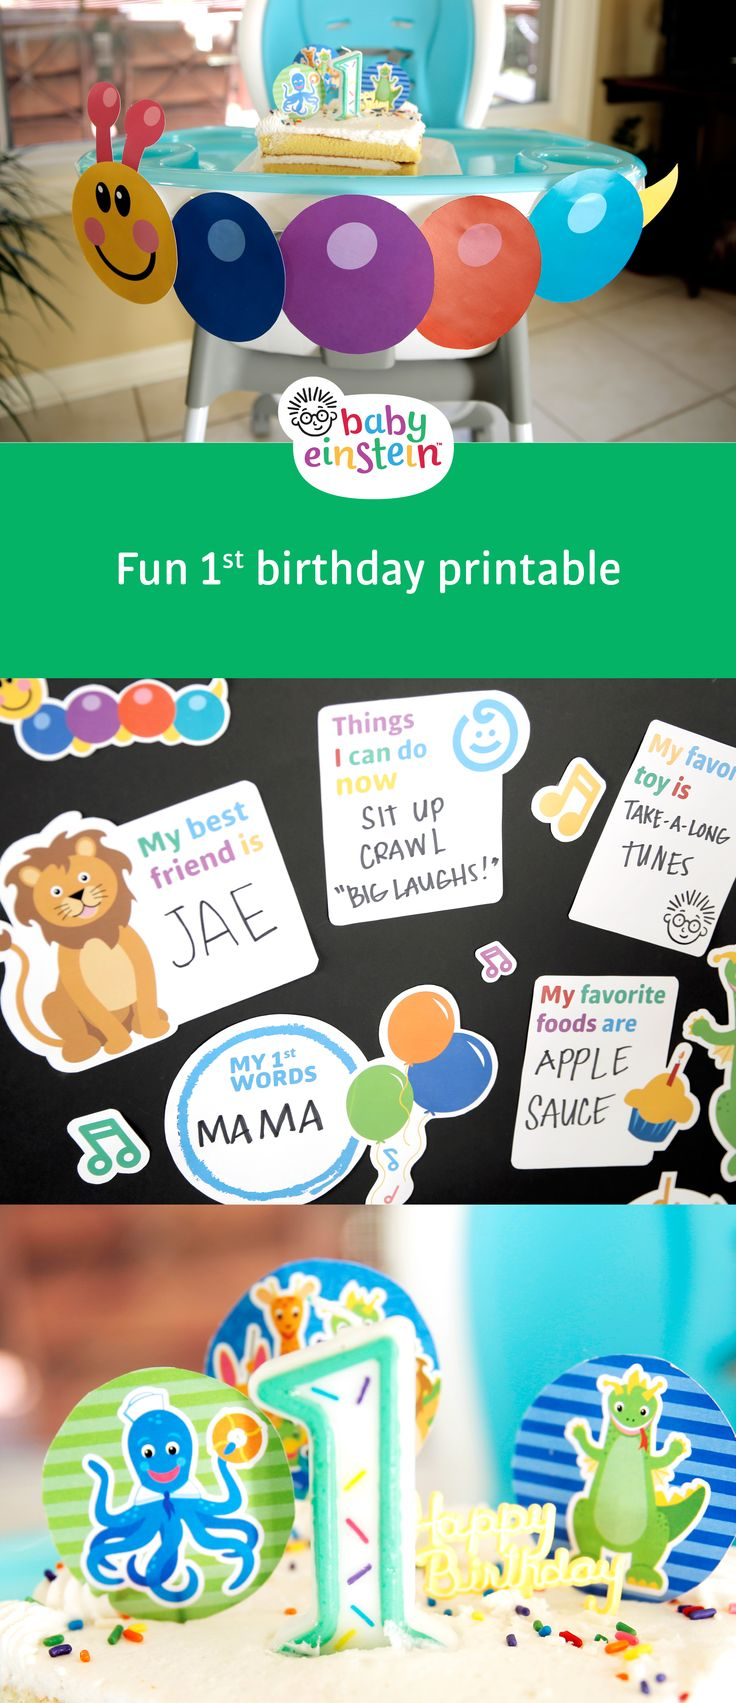 Adorable printables for your Baby Einstein 1st Birthday Party! Get printables now!